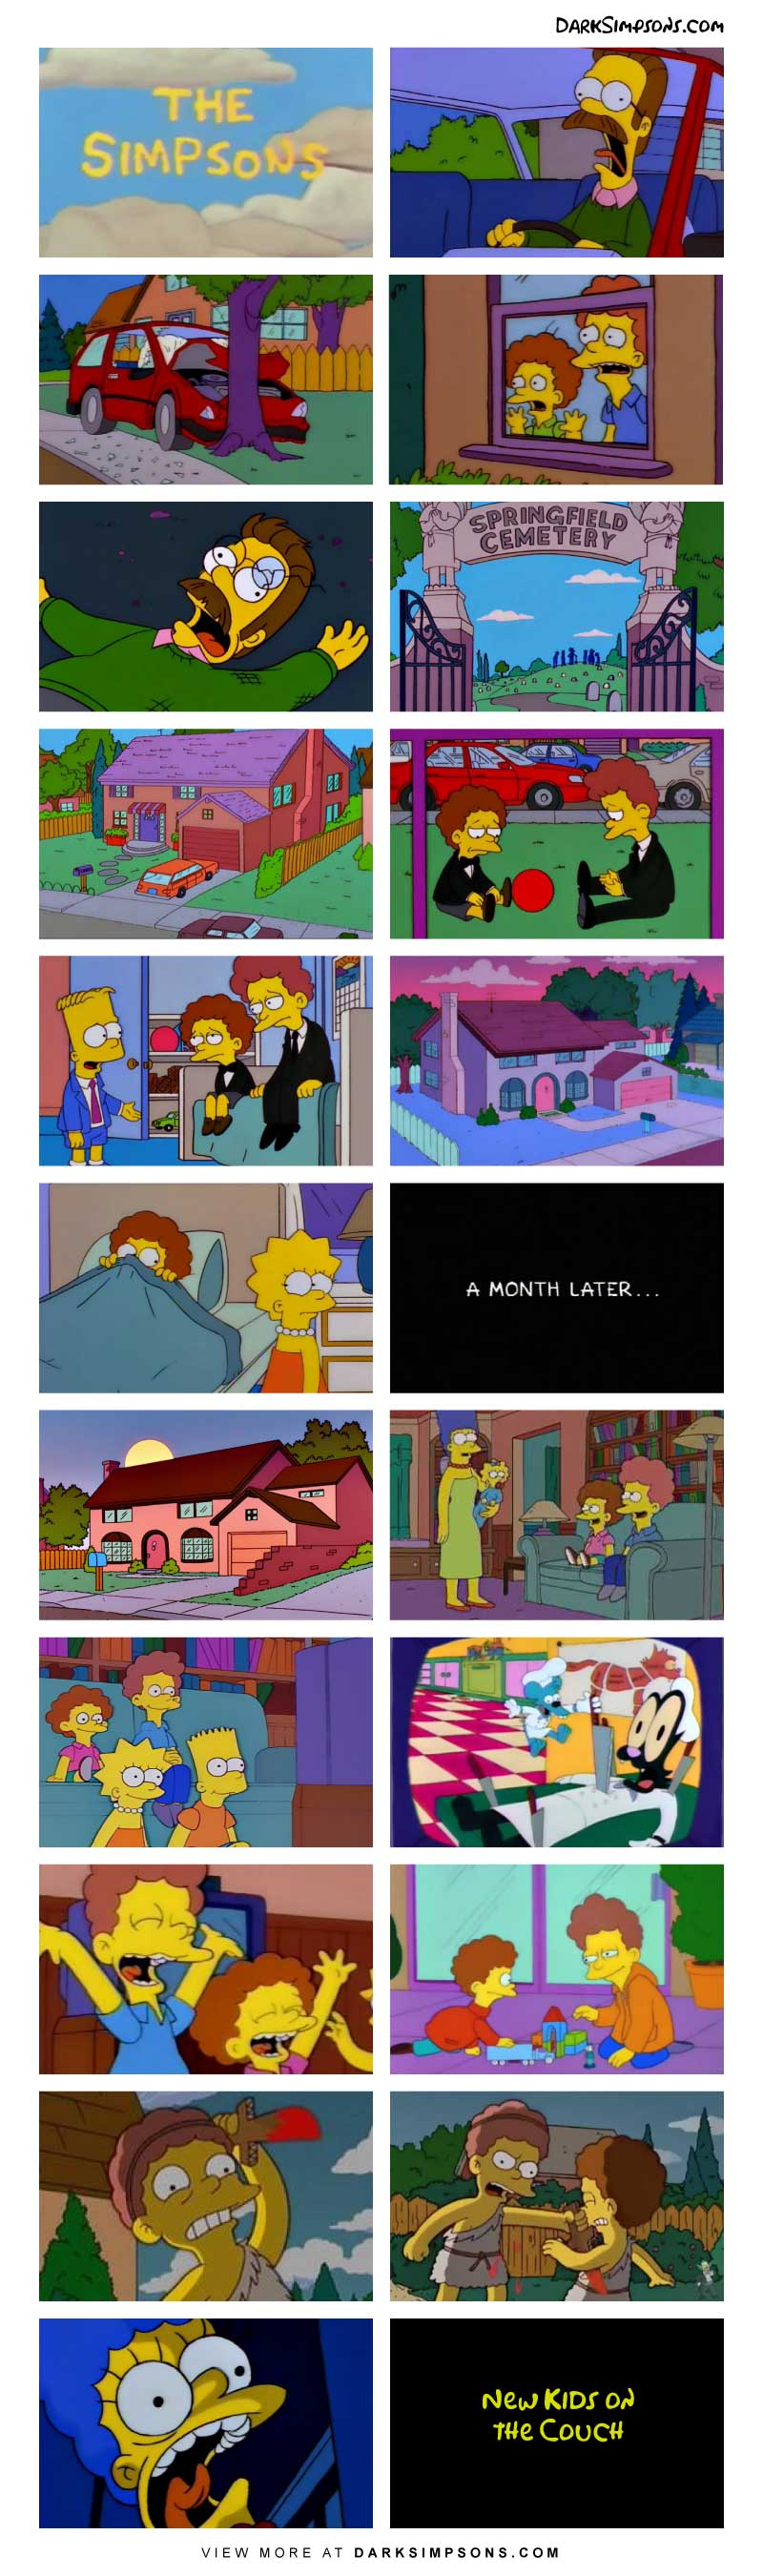 After an unfortunate accient strikes the Flanders family. Rod and Todd come to stay with the Simpsons for the forseeable future. But adjusting to a new family can be difficult, especially coming from a strict household to the Simpsons family.